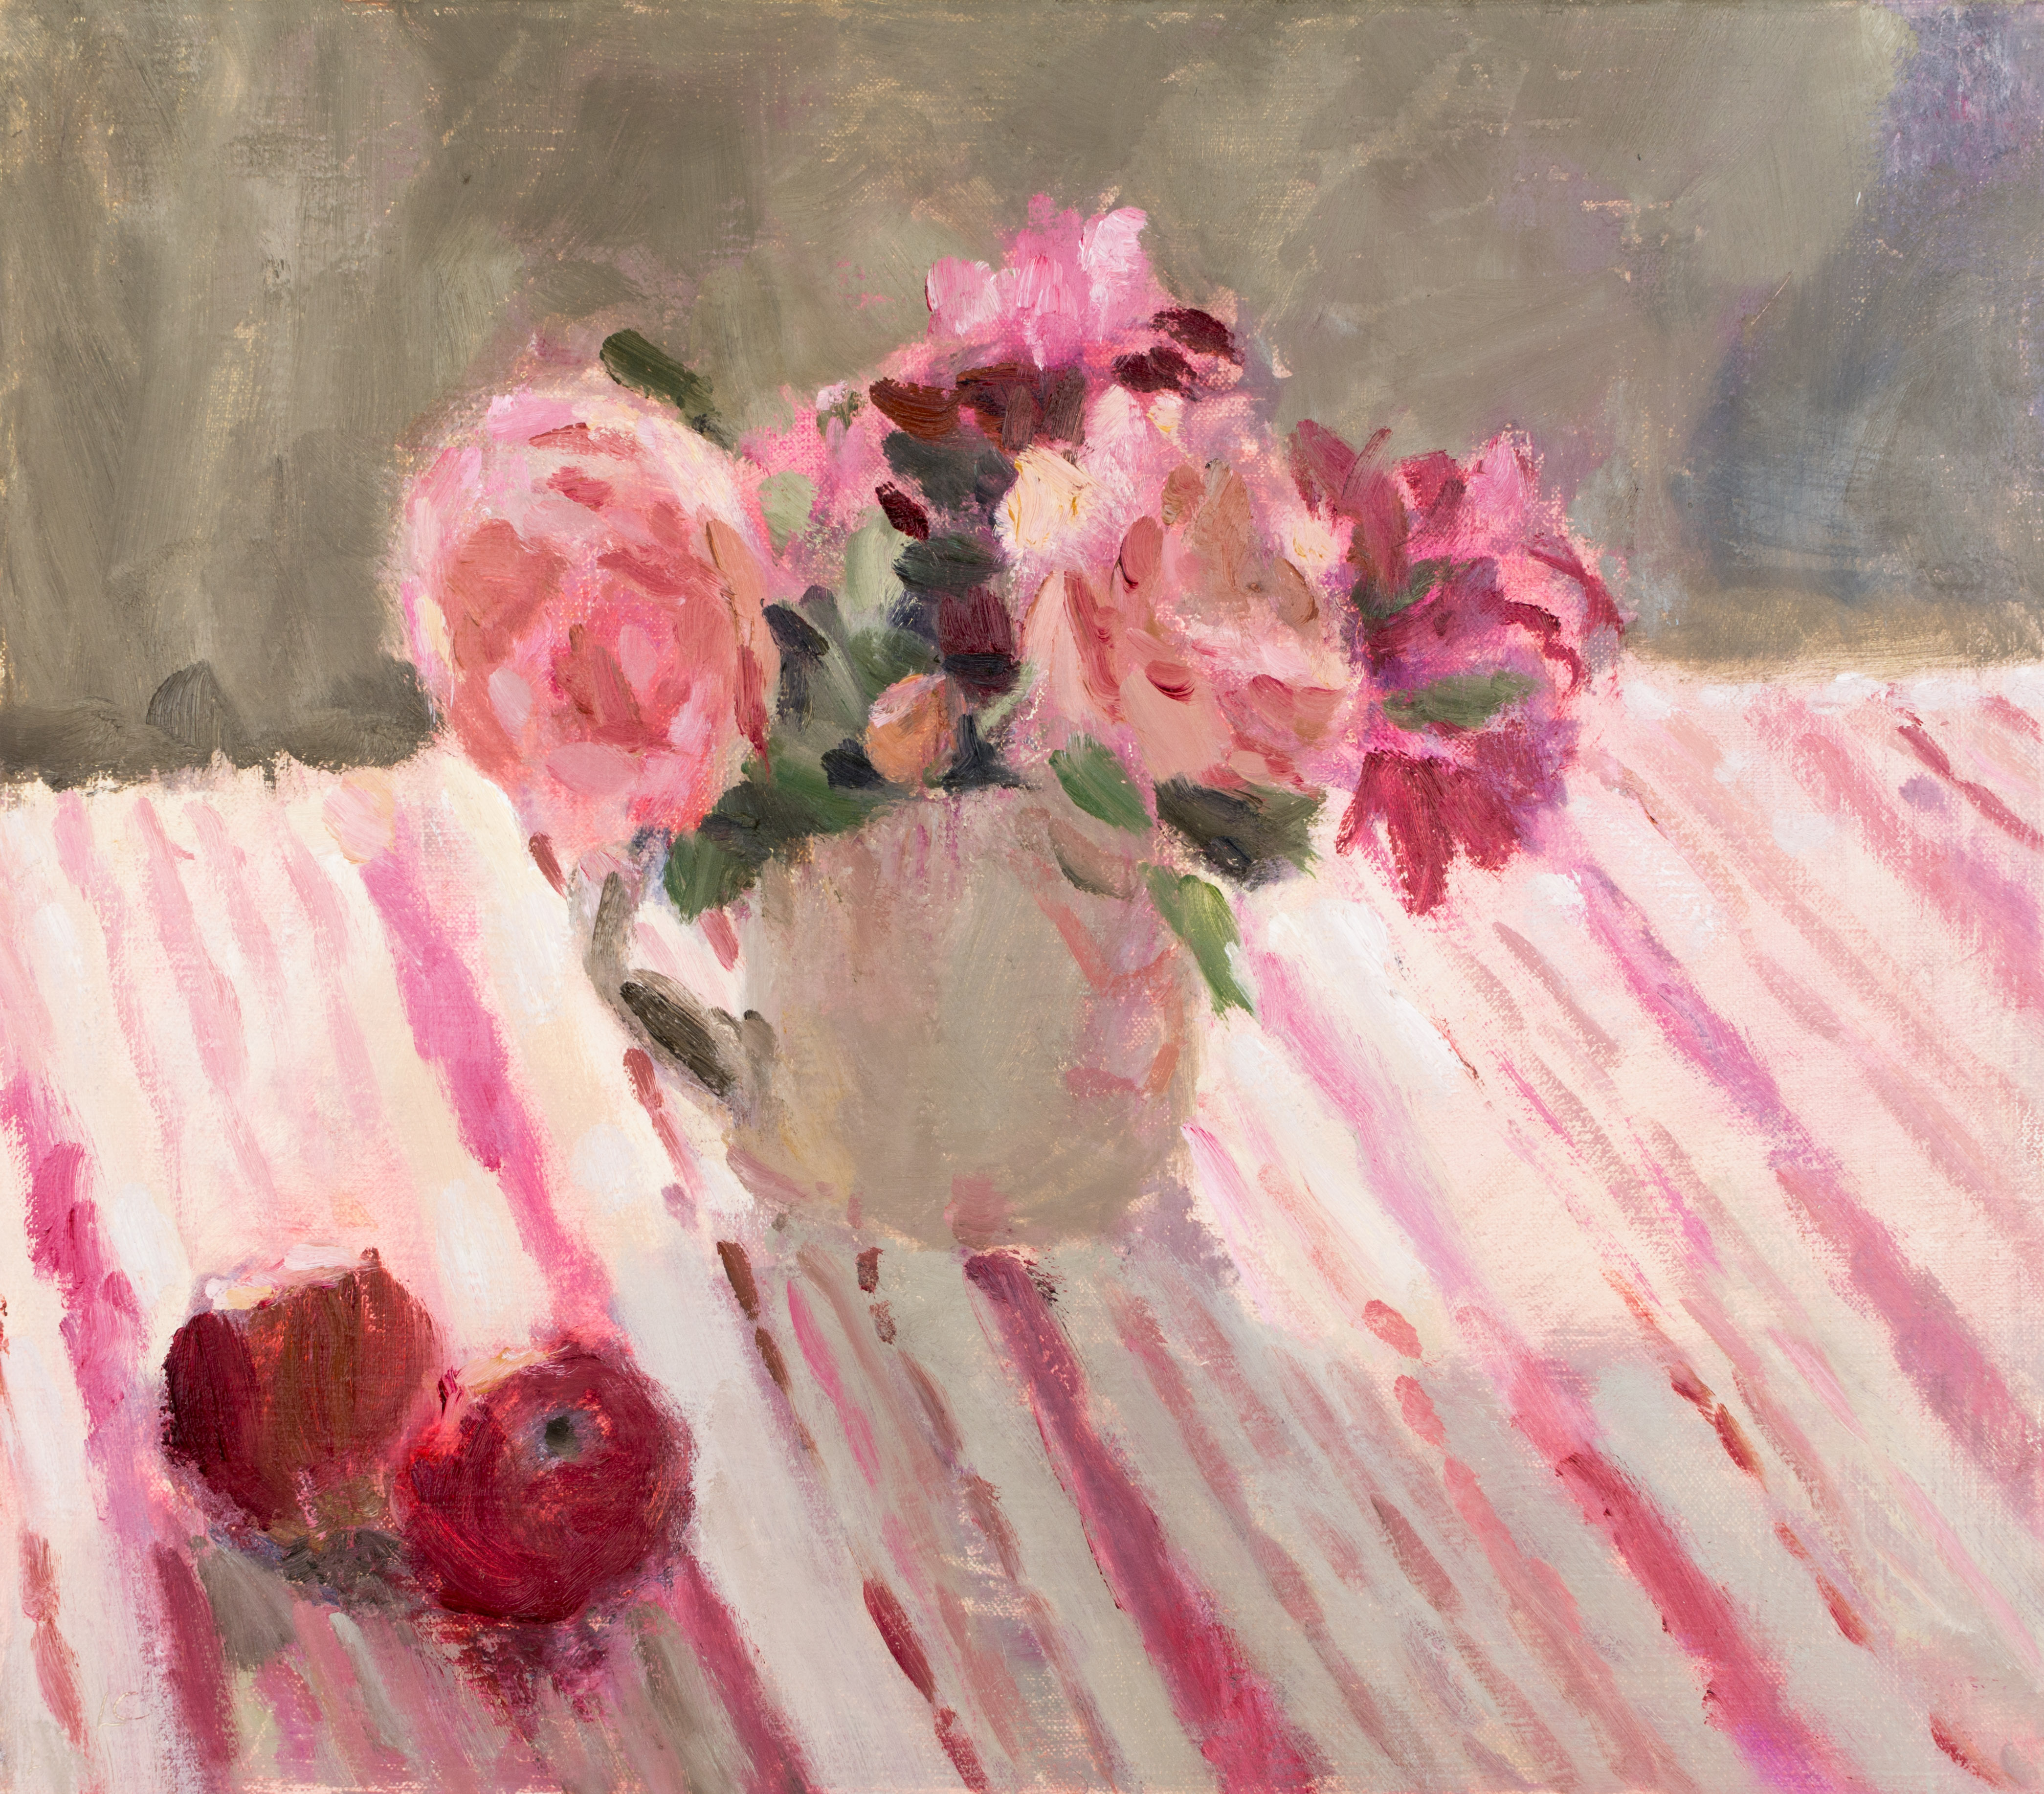 Roses and Apples on Striped Cloth